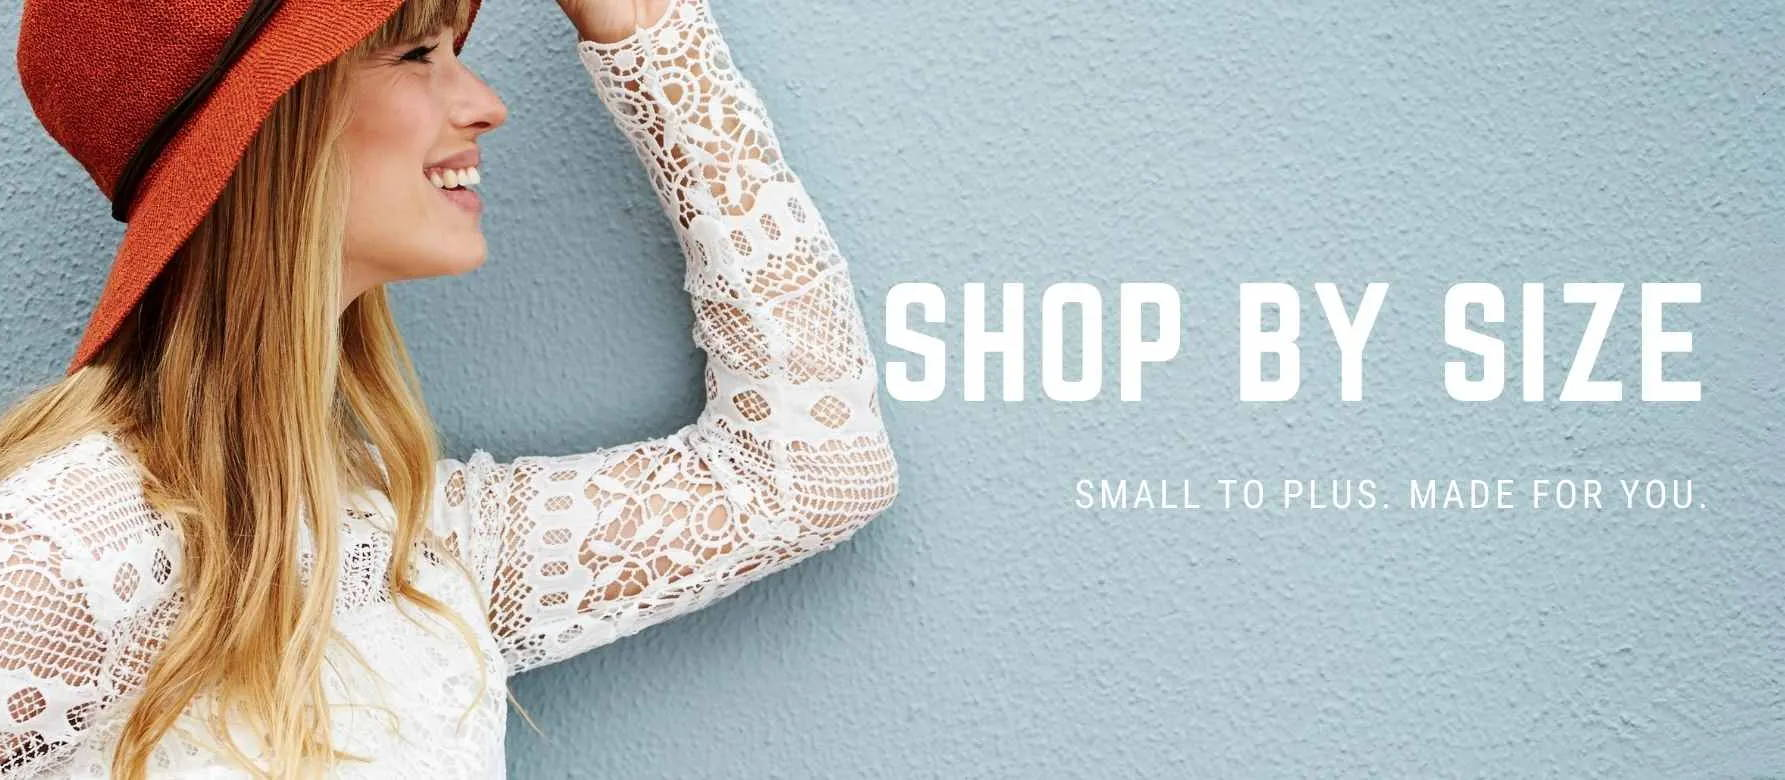 Shop by size in our online boutique store in small to plus